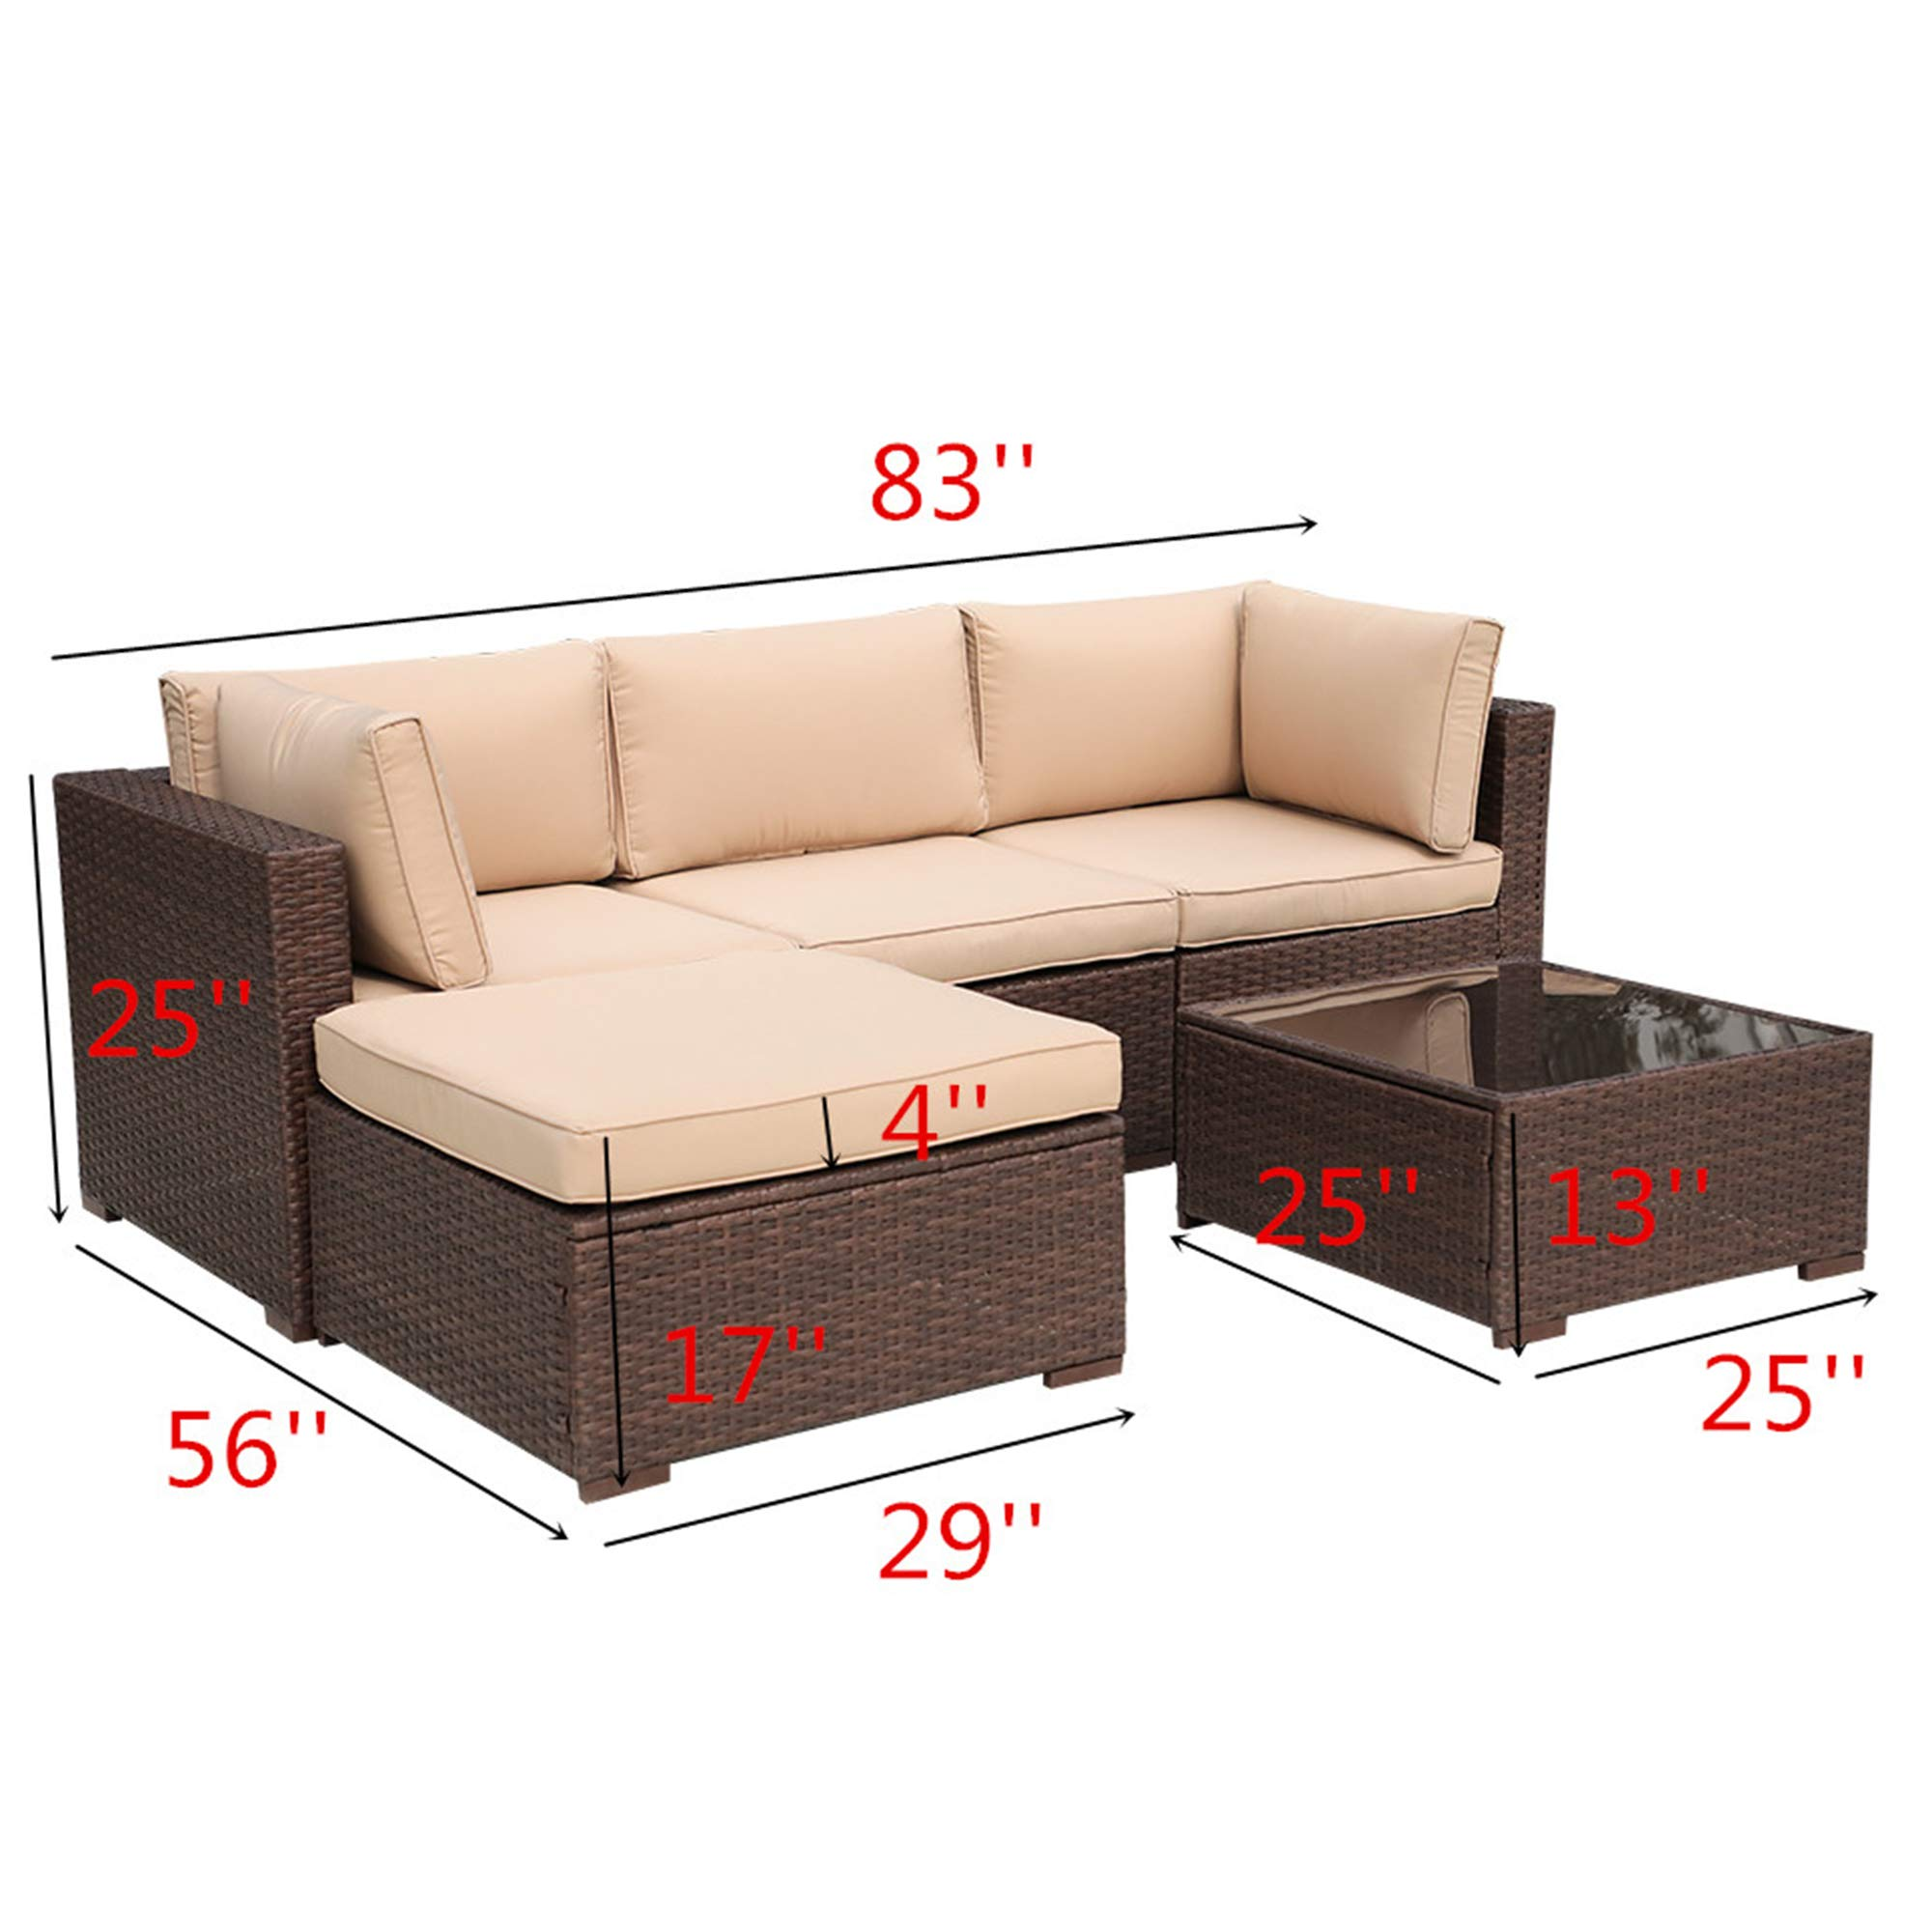 Patiorama Outdoor Furniture Sectional Sofa Set (5-Piece Set) All-Weather Brown PE Wicker with Beige Seat Cushions &Glass Coffee Table| Patio, Backyard, Pool| Steel Frame by Patiorama (Image #3)